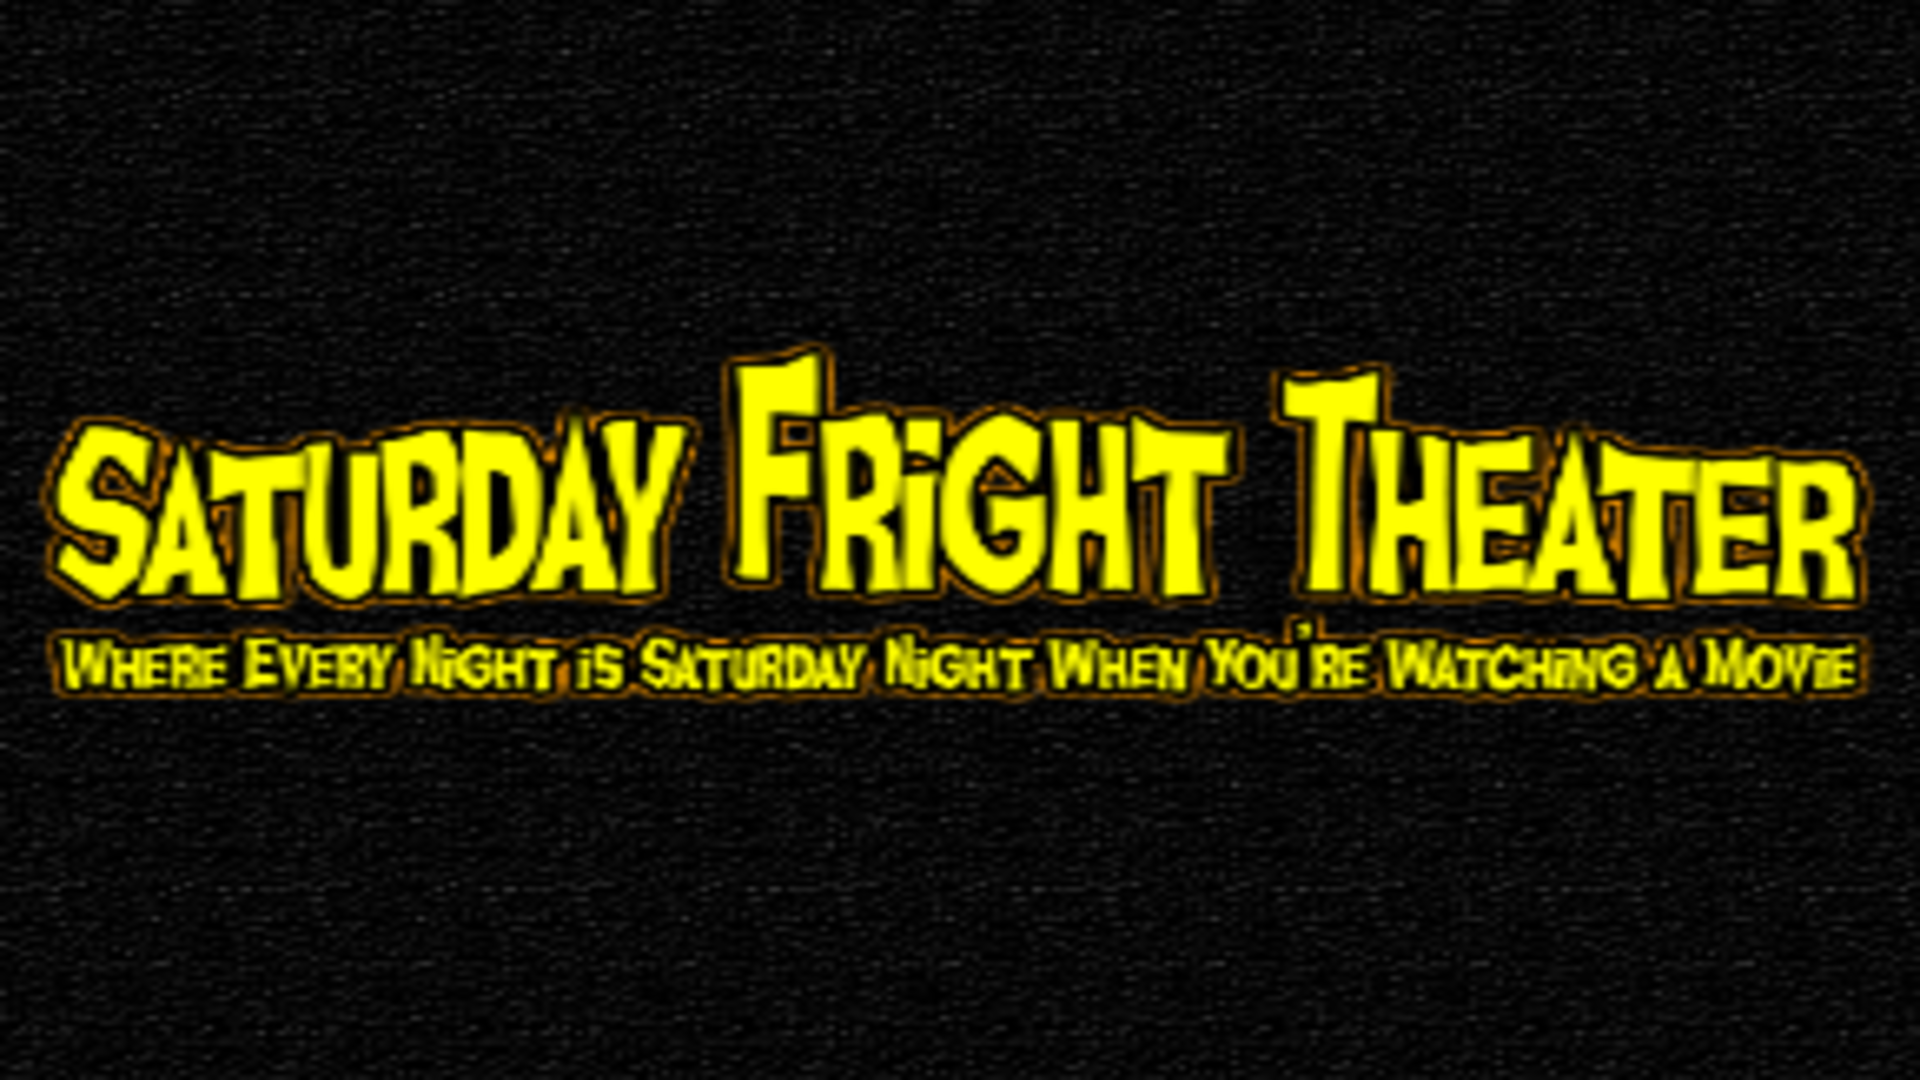 Saturday Fright Theater